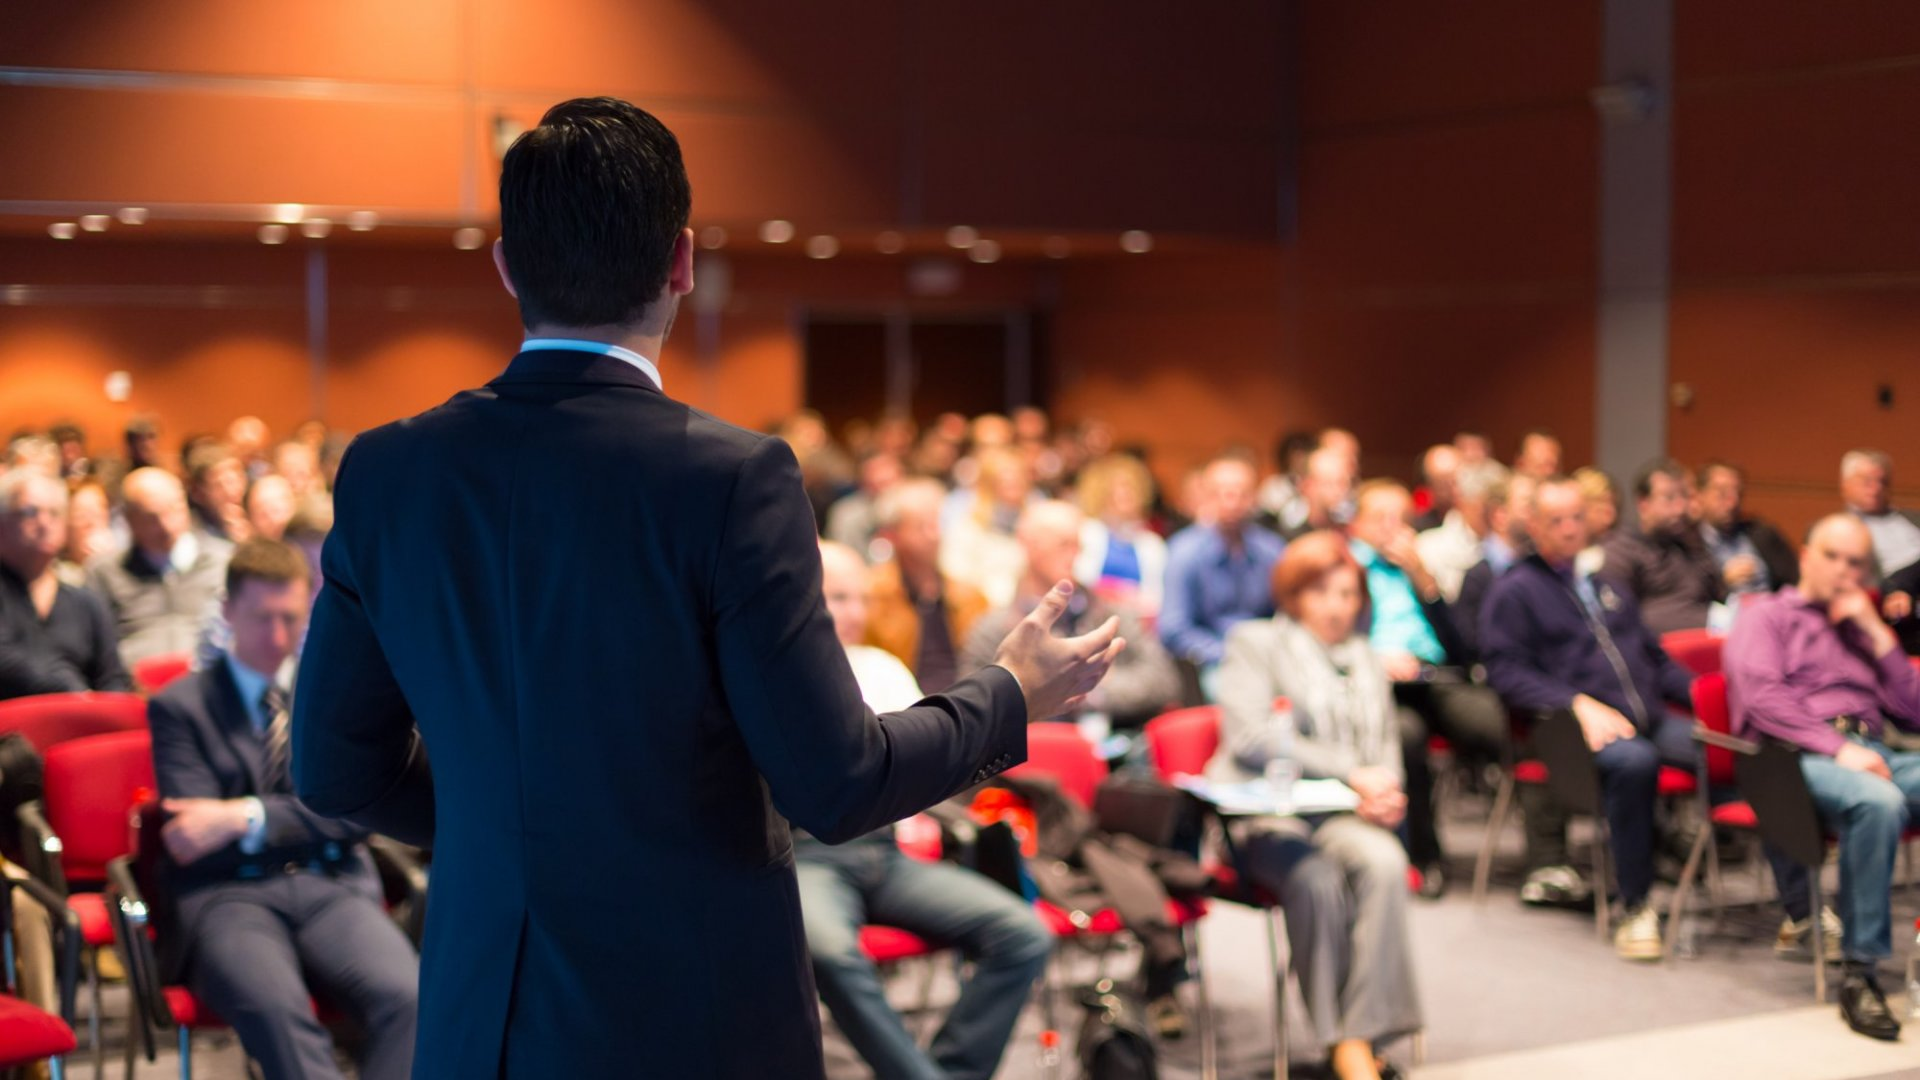 How to Master Public Speaking (With Tips That Actually Make Sense)